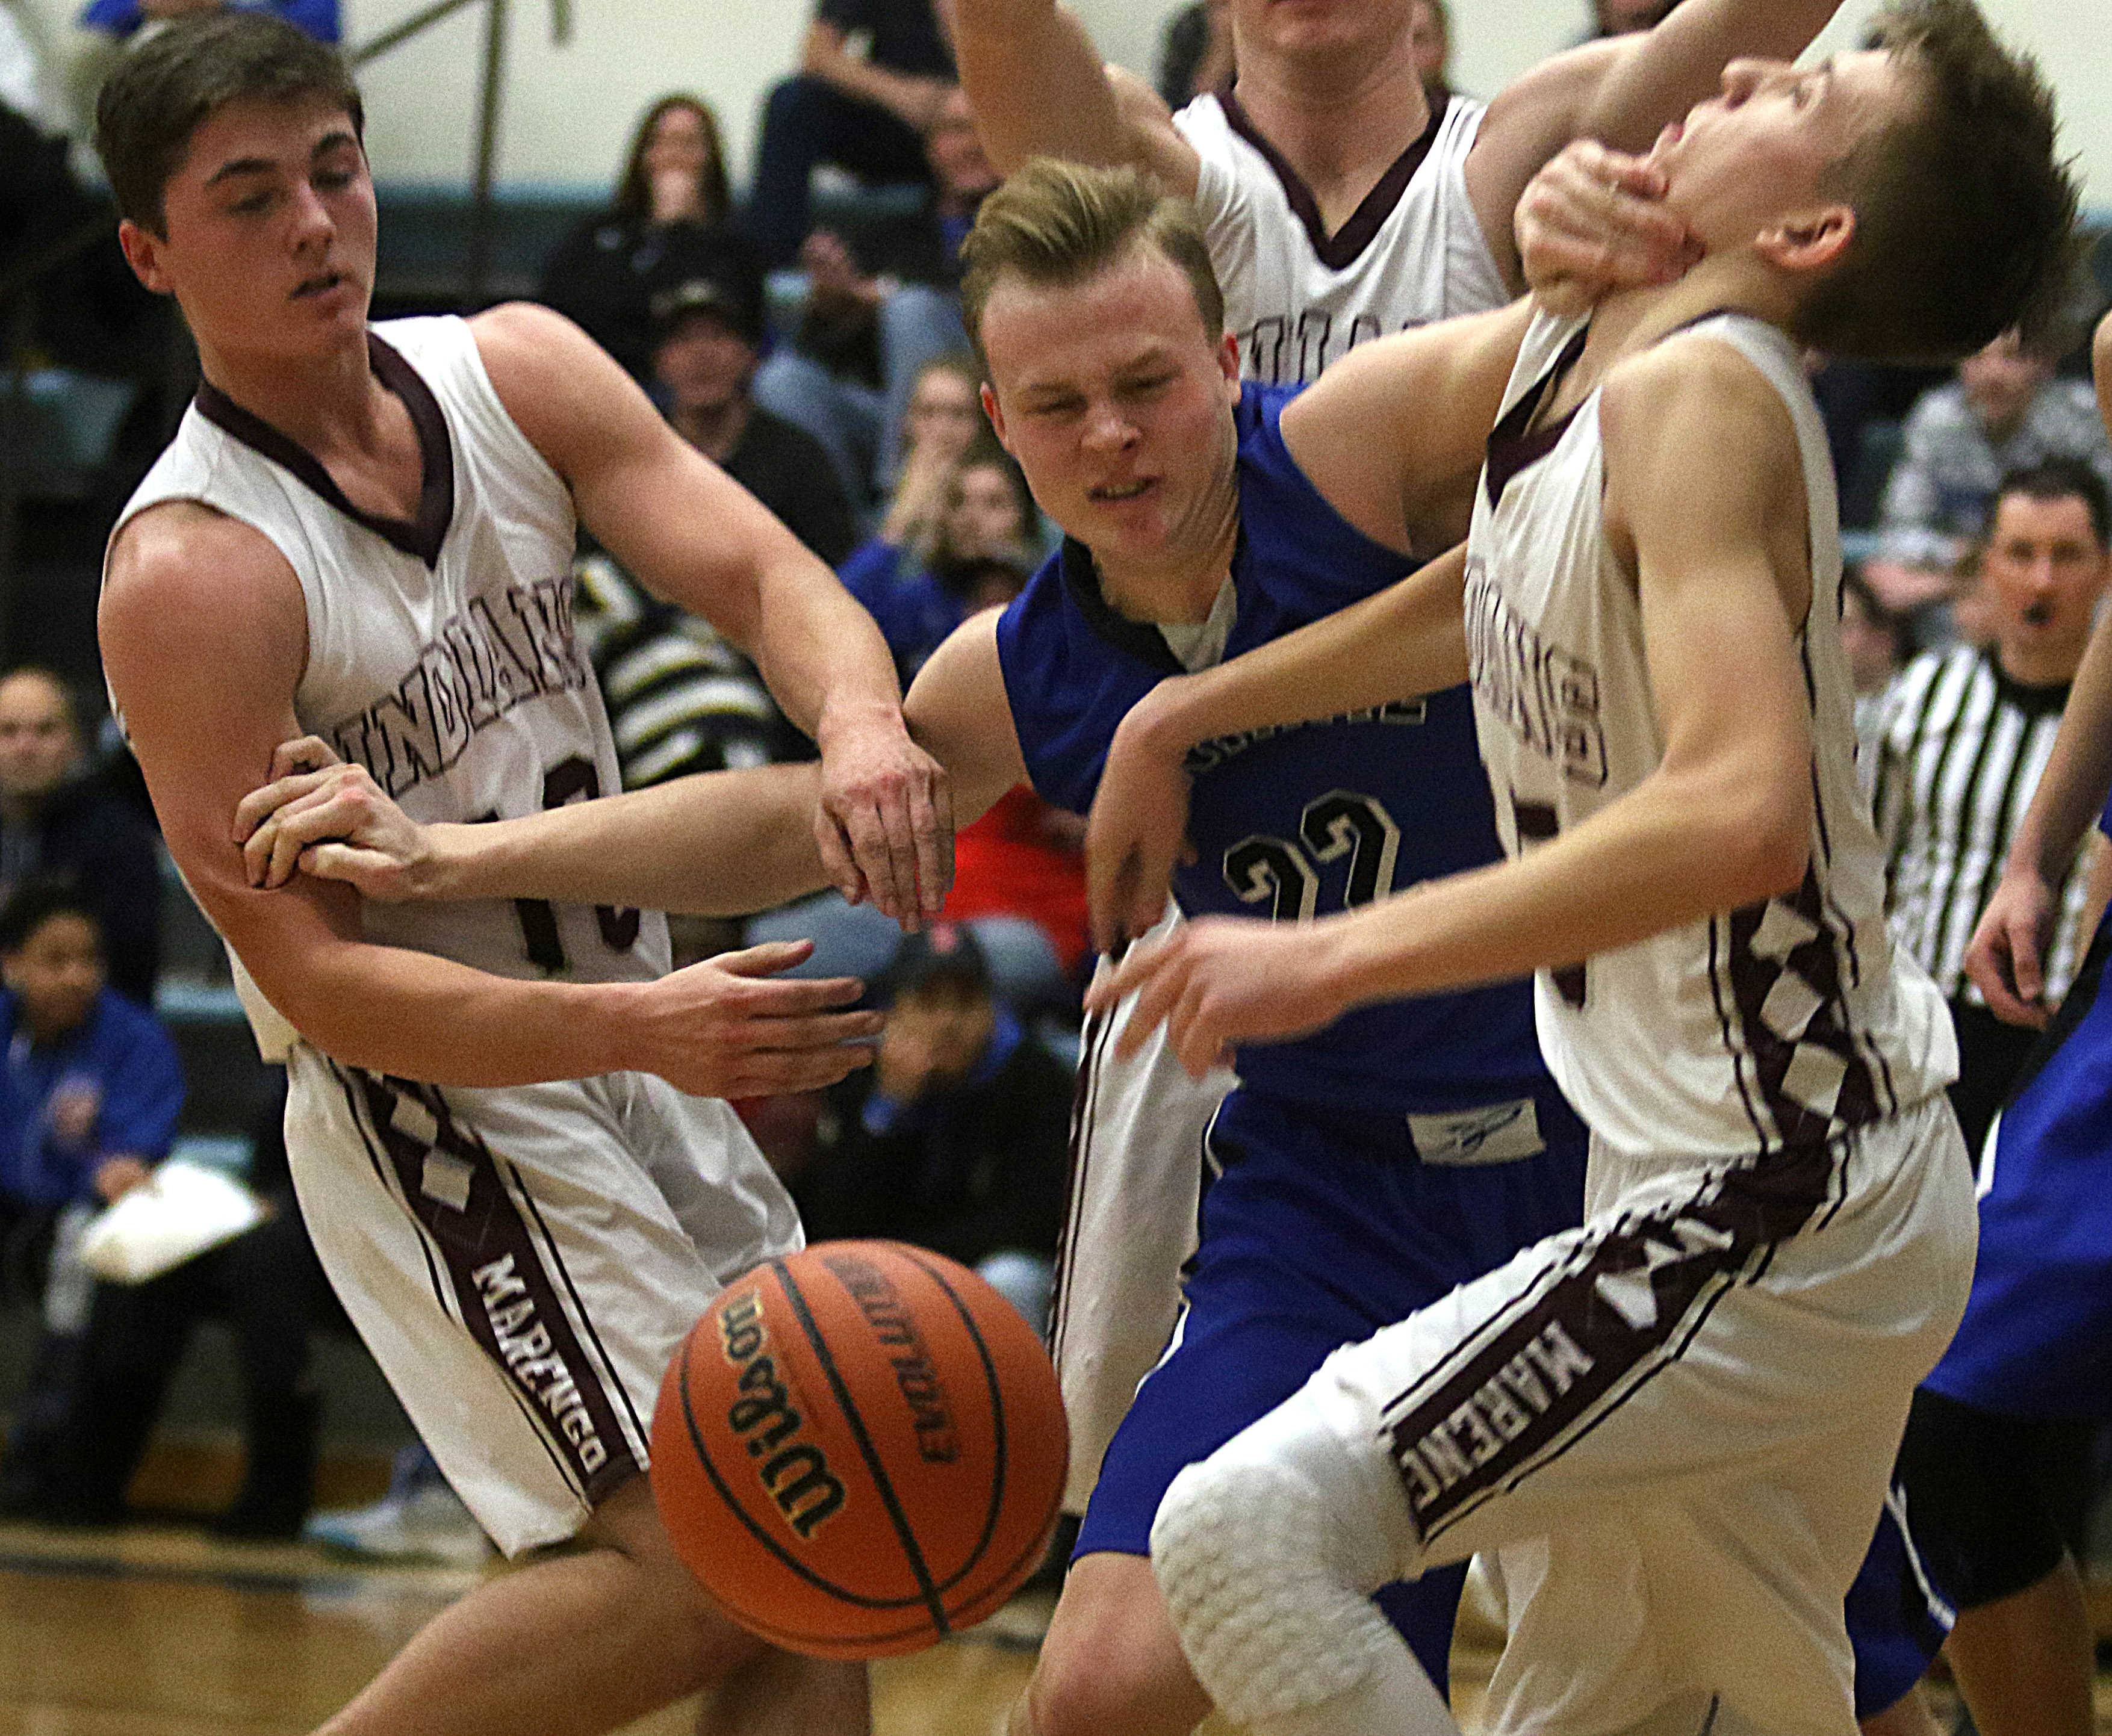 Burlington Central's Joey Ratzek, center, muscles his way through Marengo's Connor Wascher, left, and Aidan Kirchner, right, during the title game of the MLK Classic tournament at Burlington Monday night.